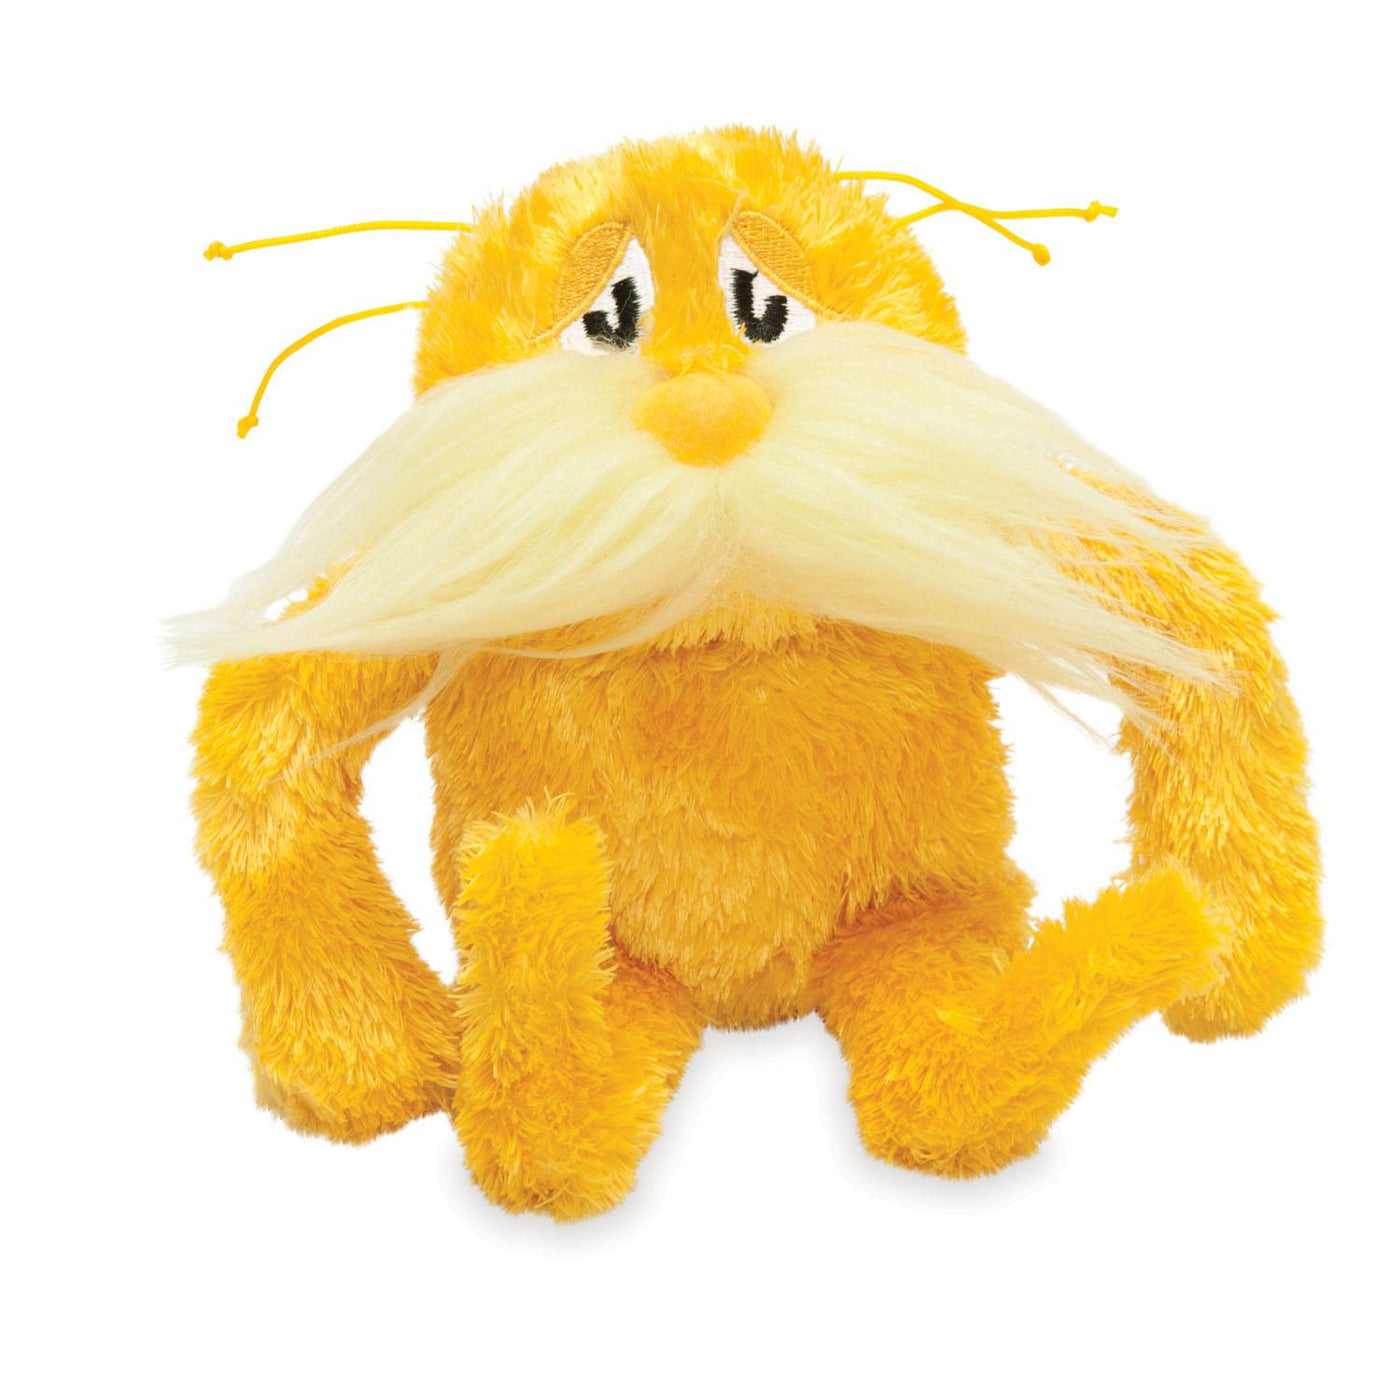 Dr. Seuss THE LORAX - Manhattan Toy